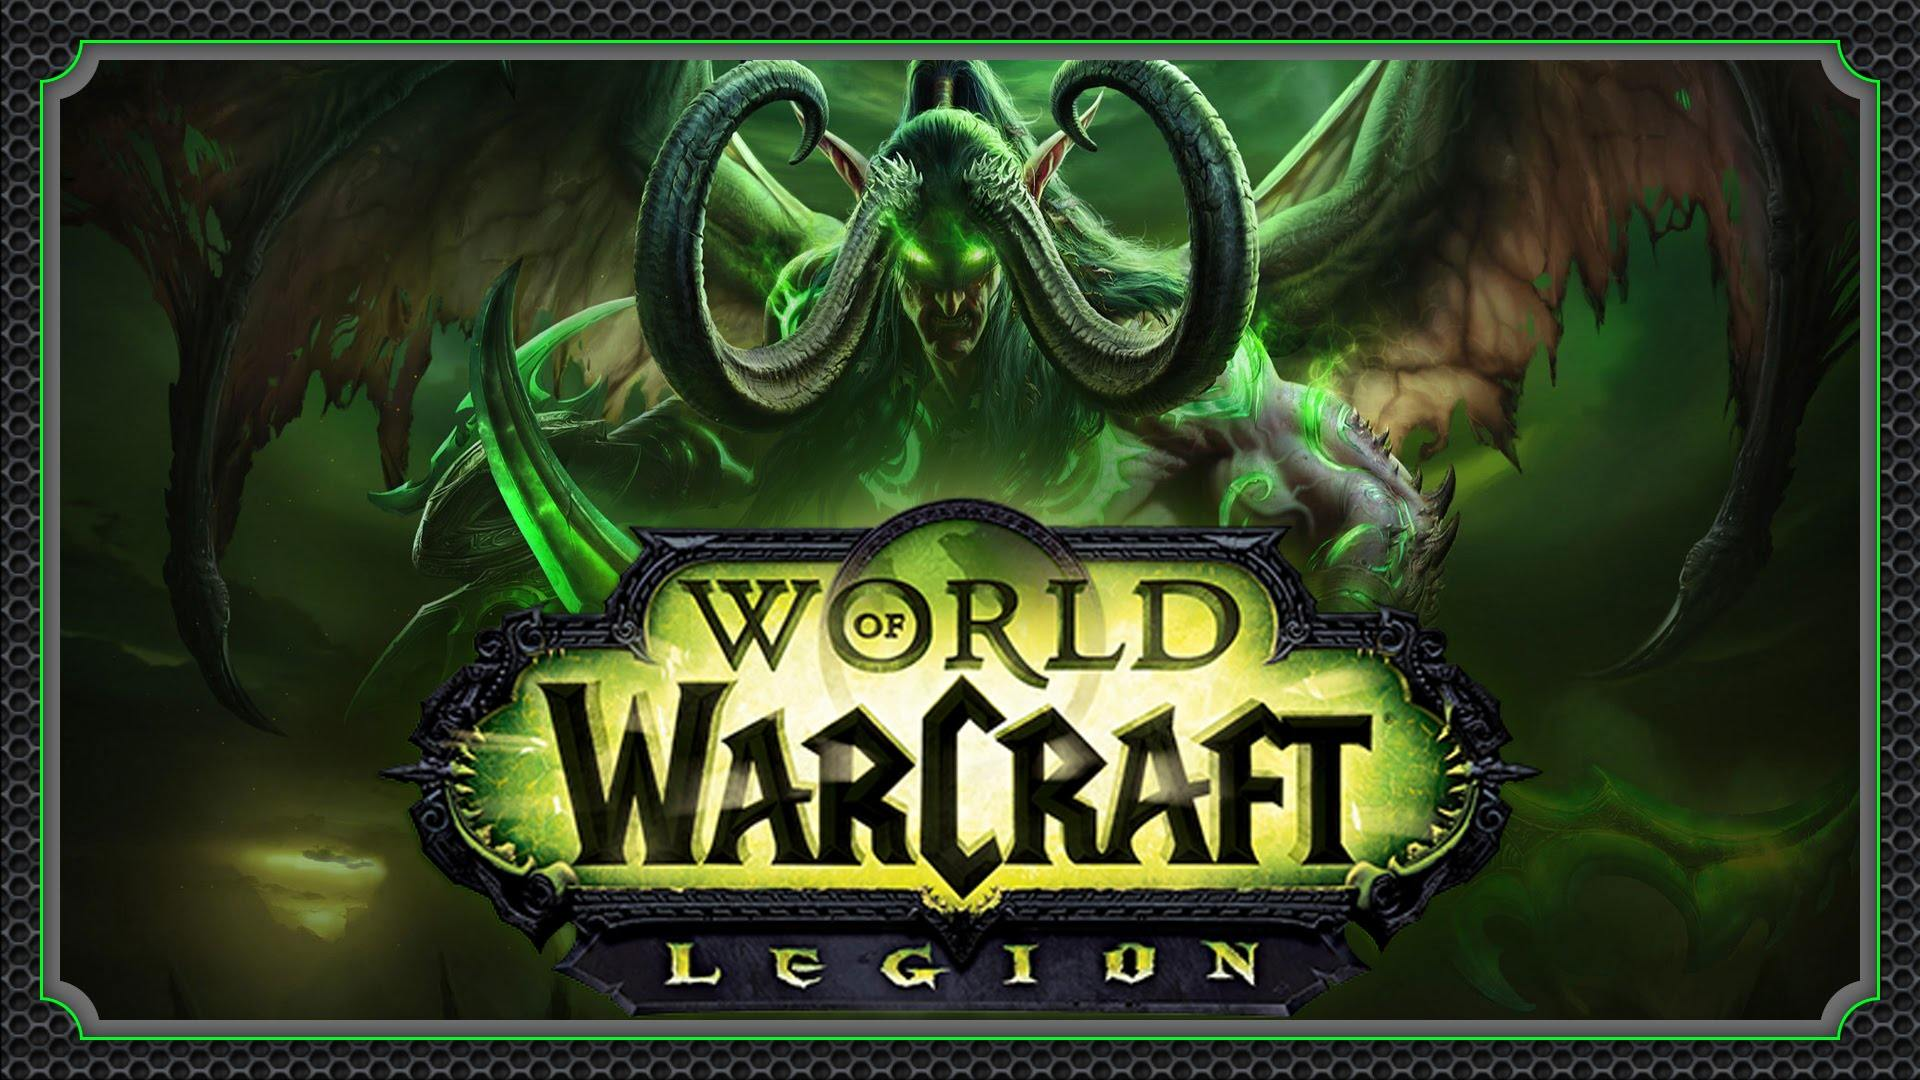 WORLD OF WARCRAFT: LEGION (RU/EU) 100LVL + GIFT